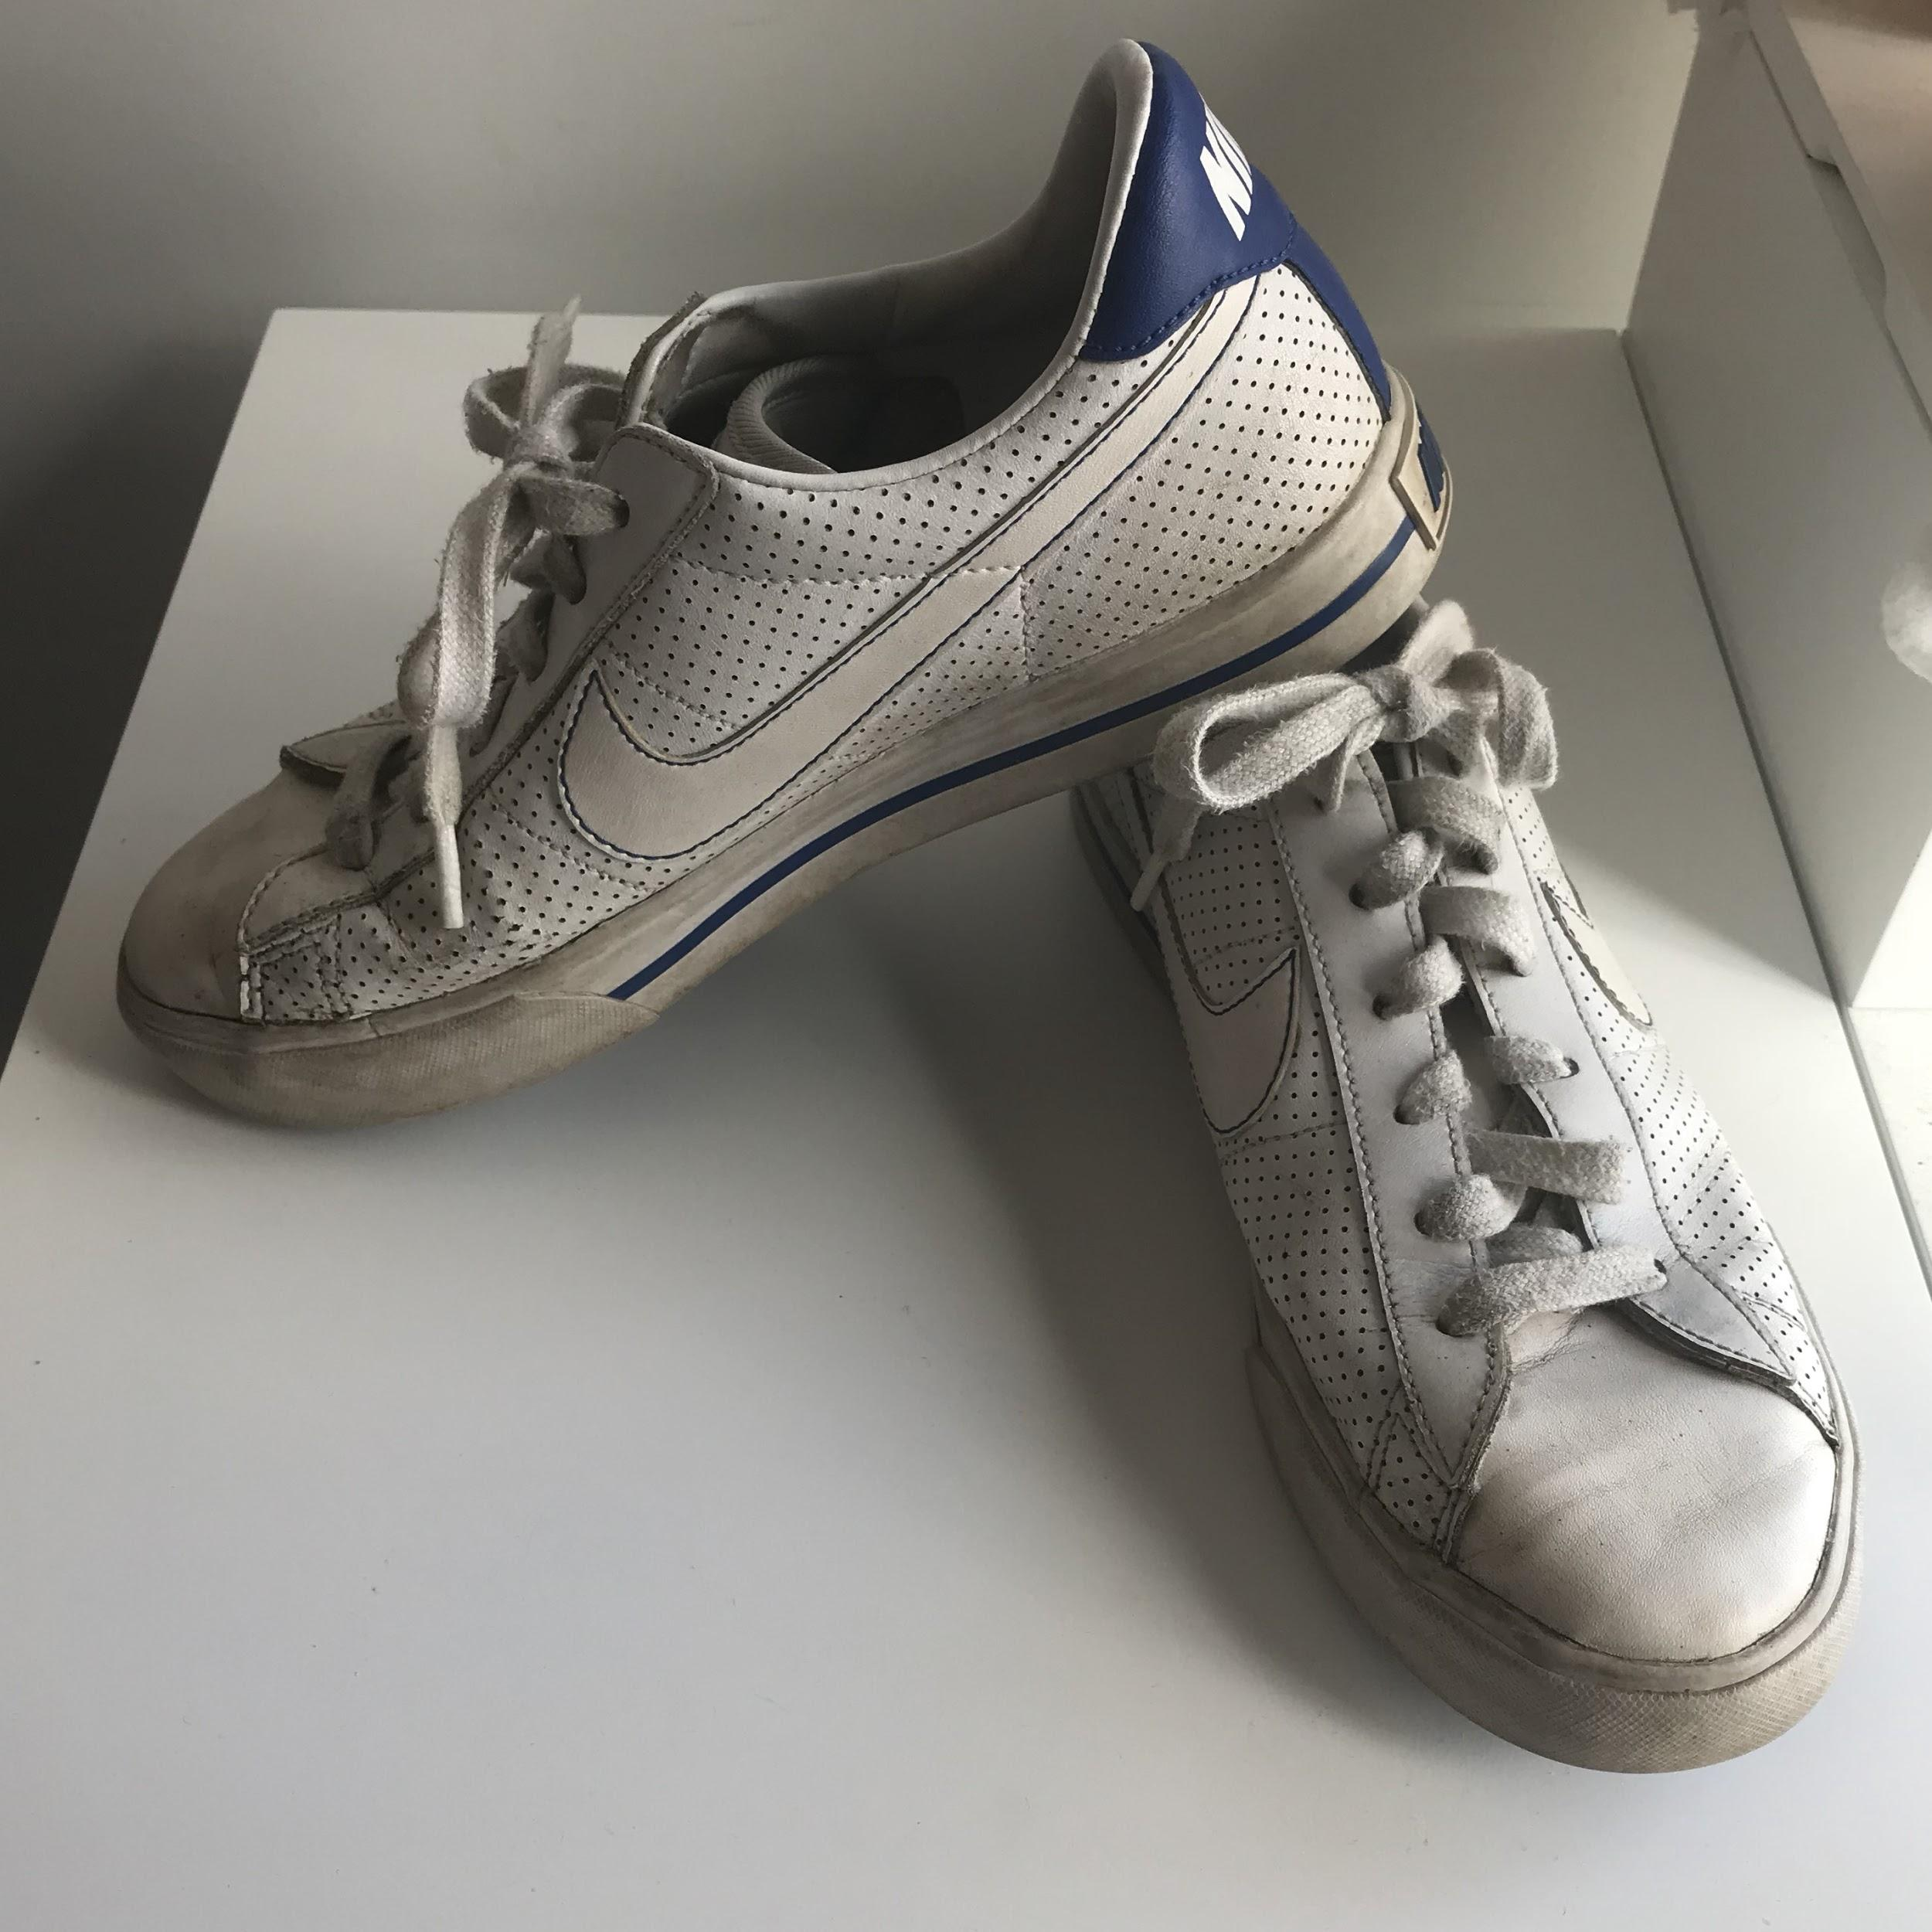 Dangerous harms when wearing dirty old shoes